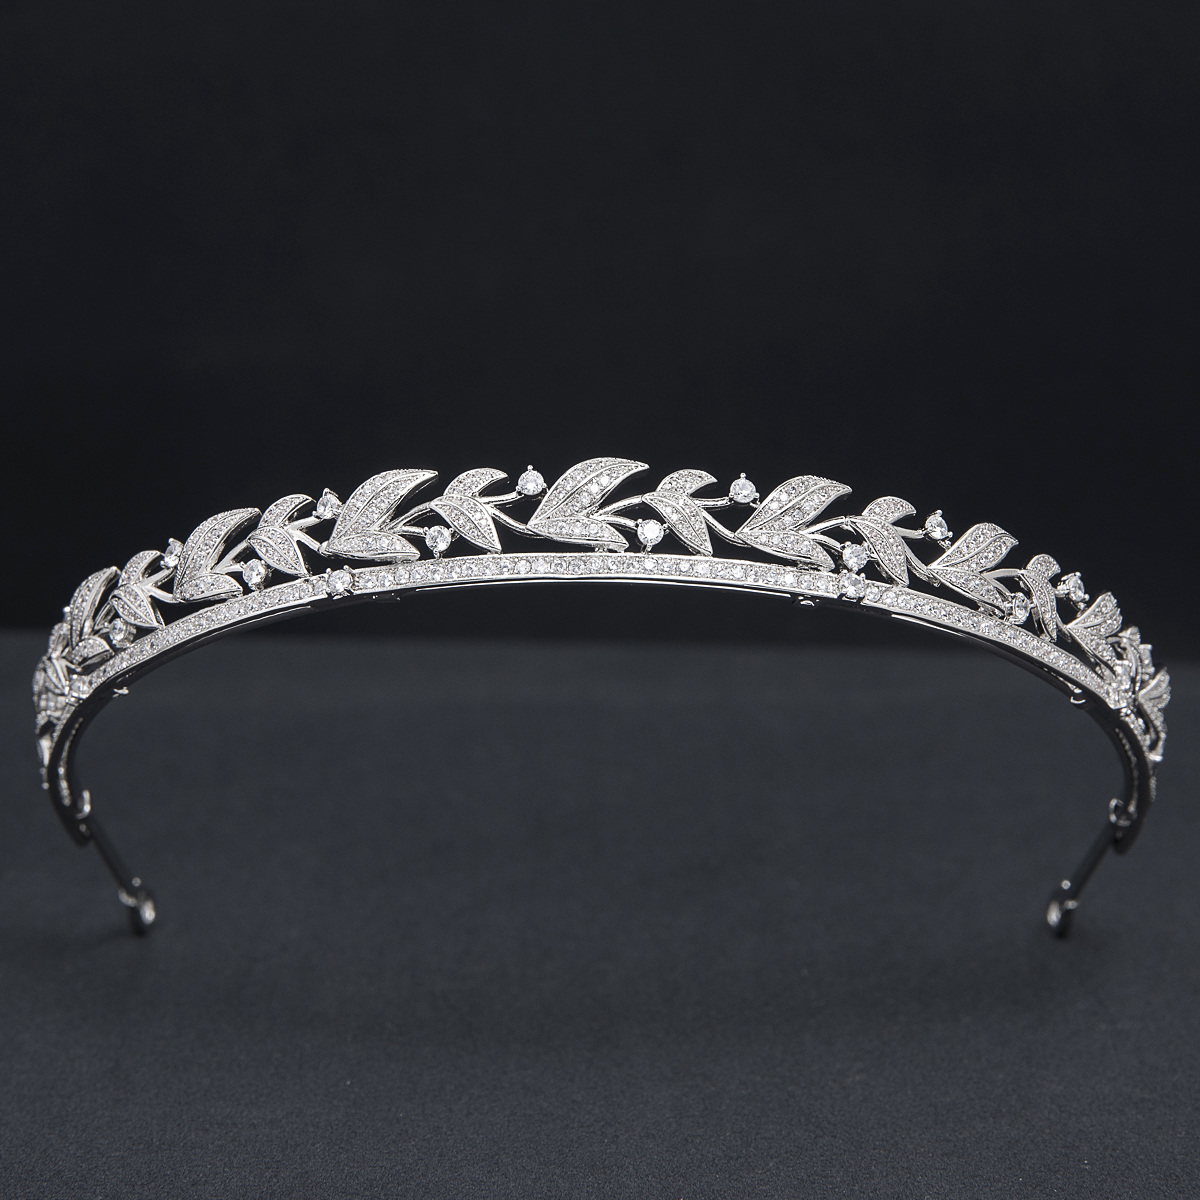 Pretty Cubic Zirconia Leaves Headband, Tiara for Wedding,Crystal Princess Headpieces for Girl,Prom,Party Head Jewelry CH10391